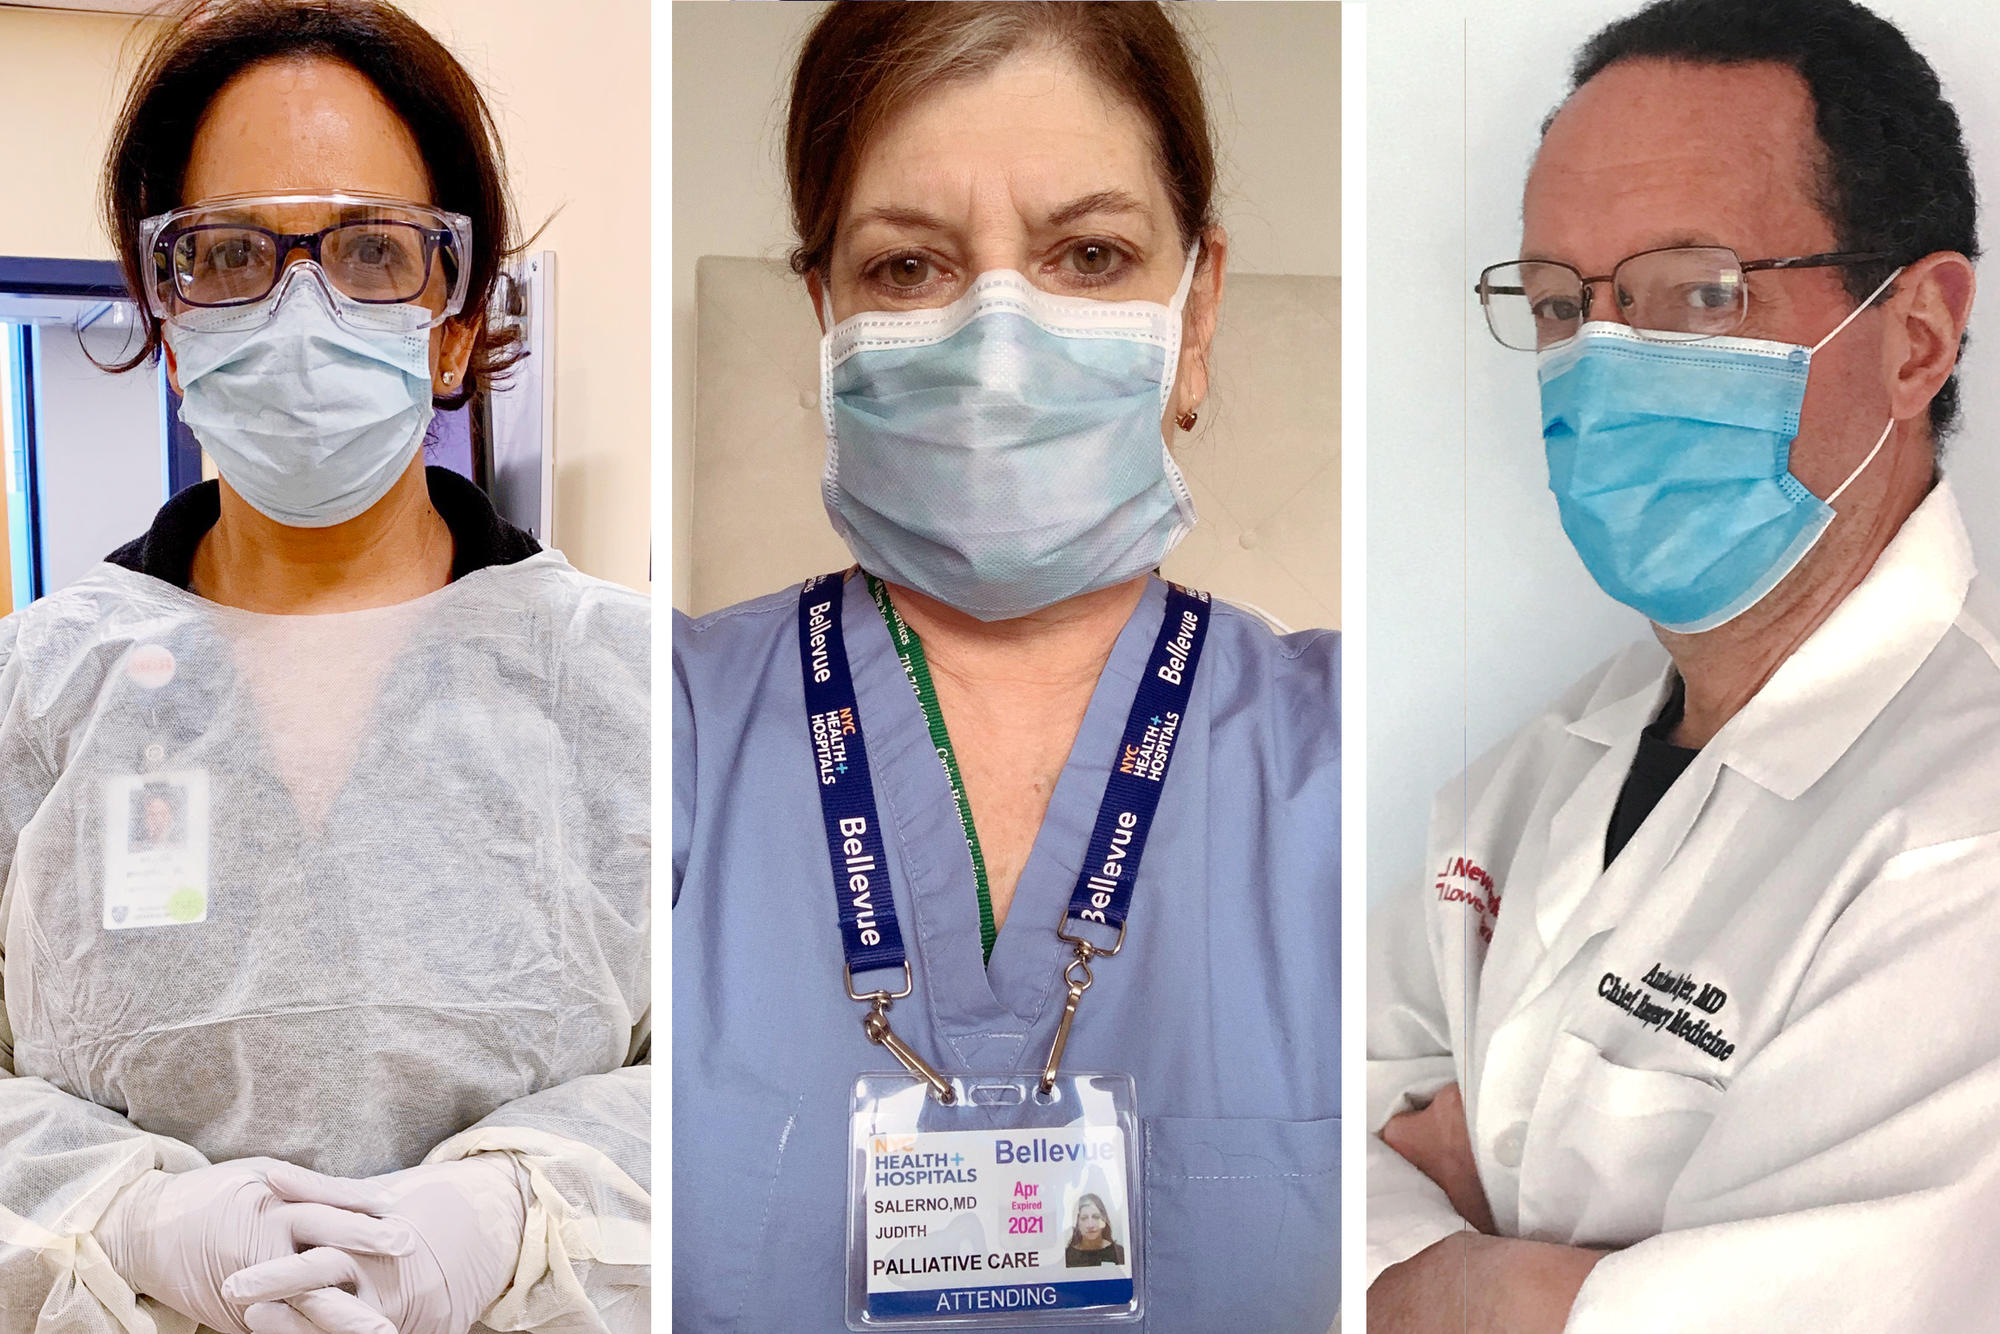 Medical workers wearing face masks